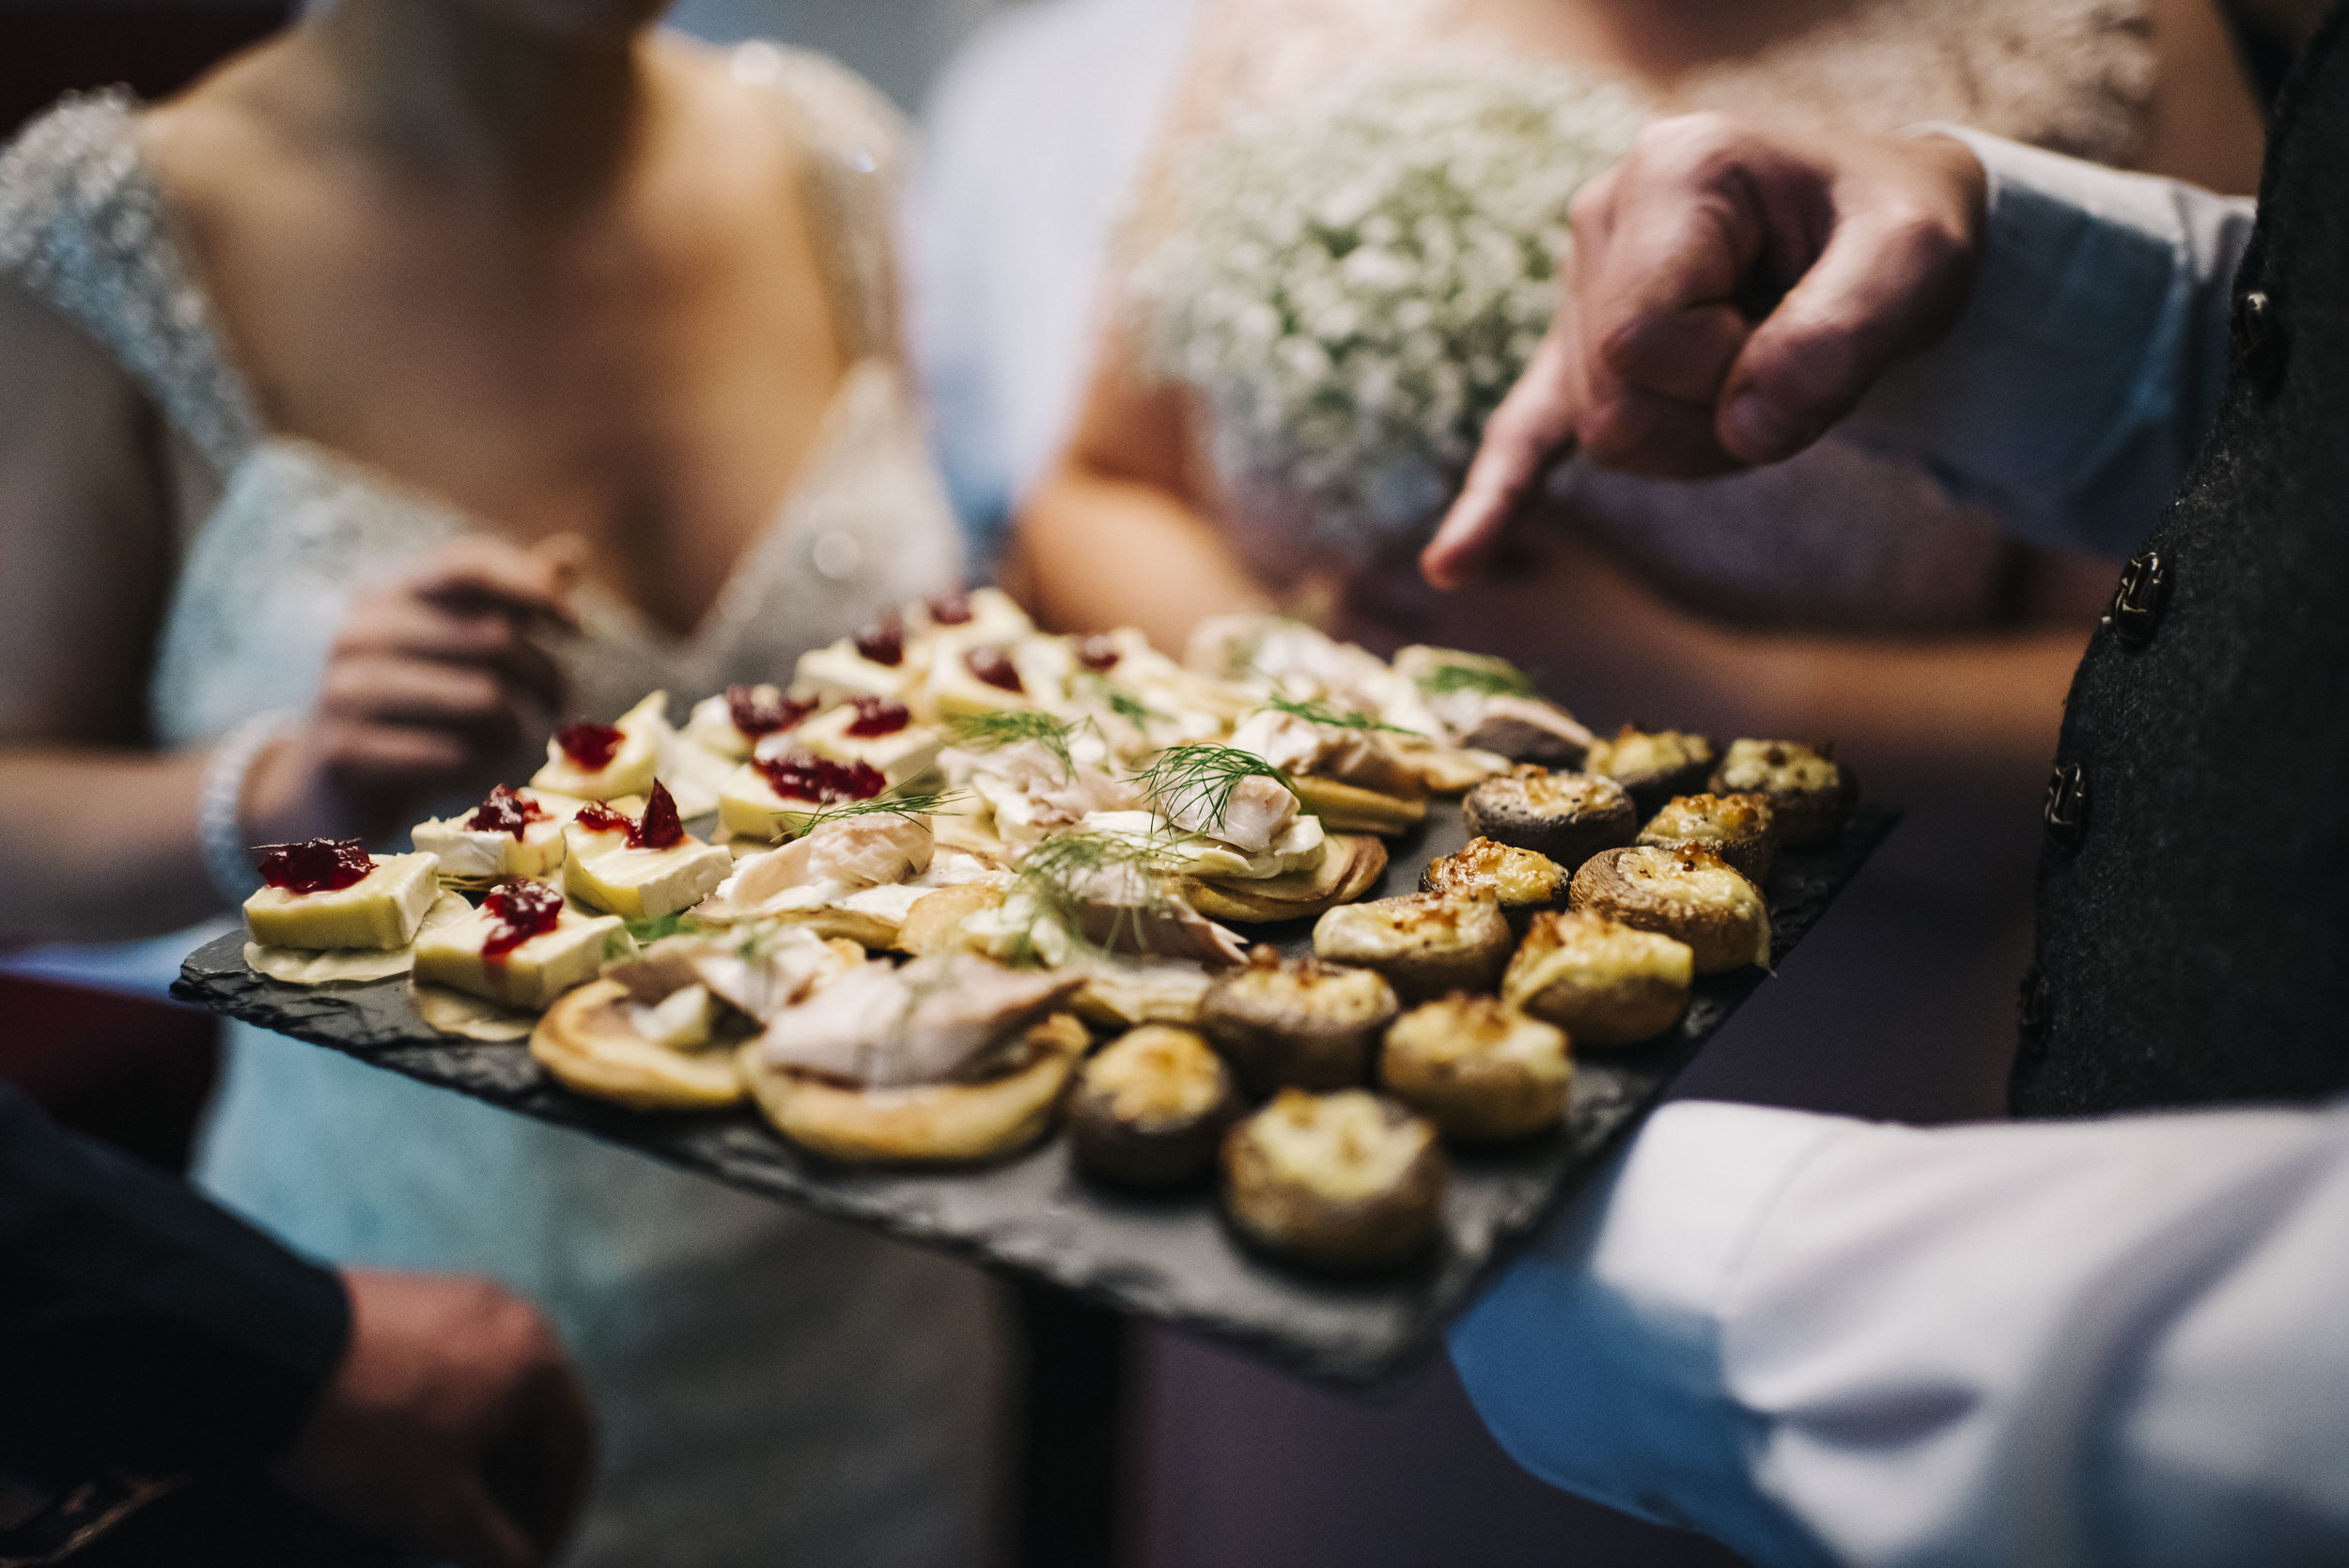 Sweet & savoury canapés - Add canapés to your wedding for as little as £1.50 per person.